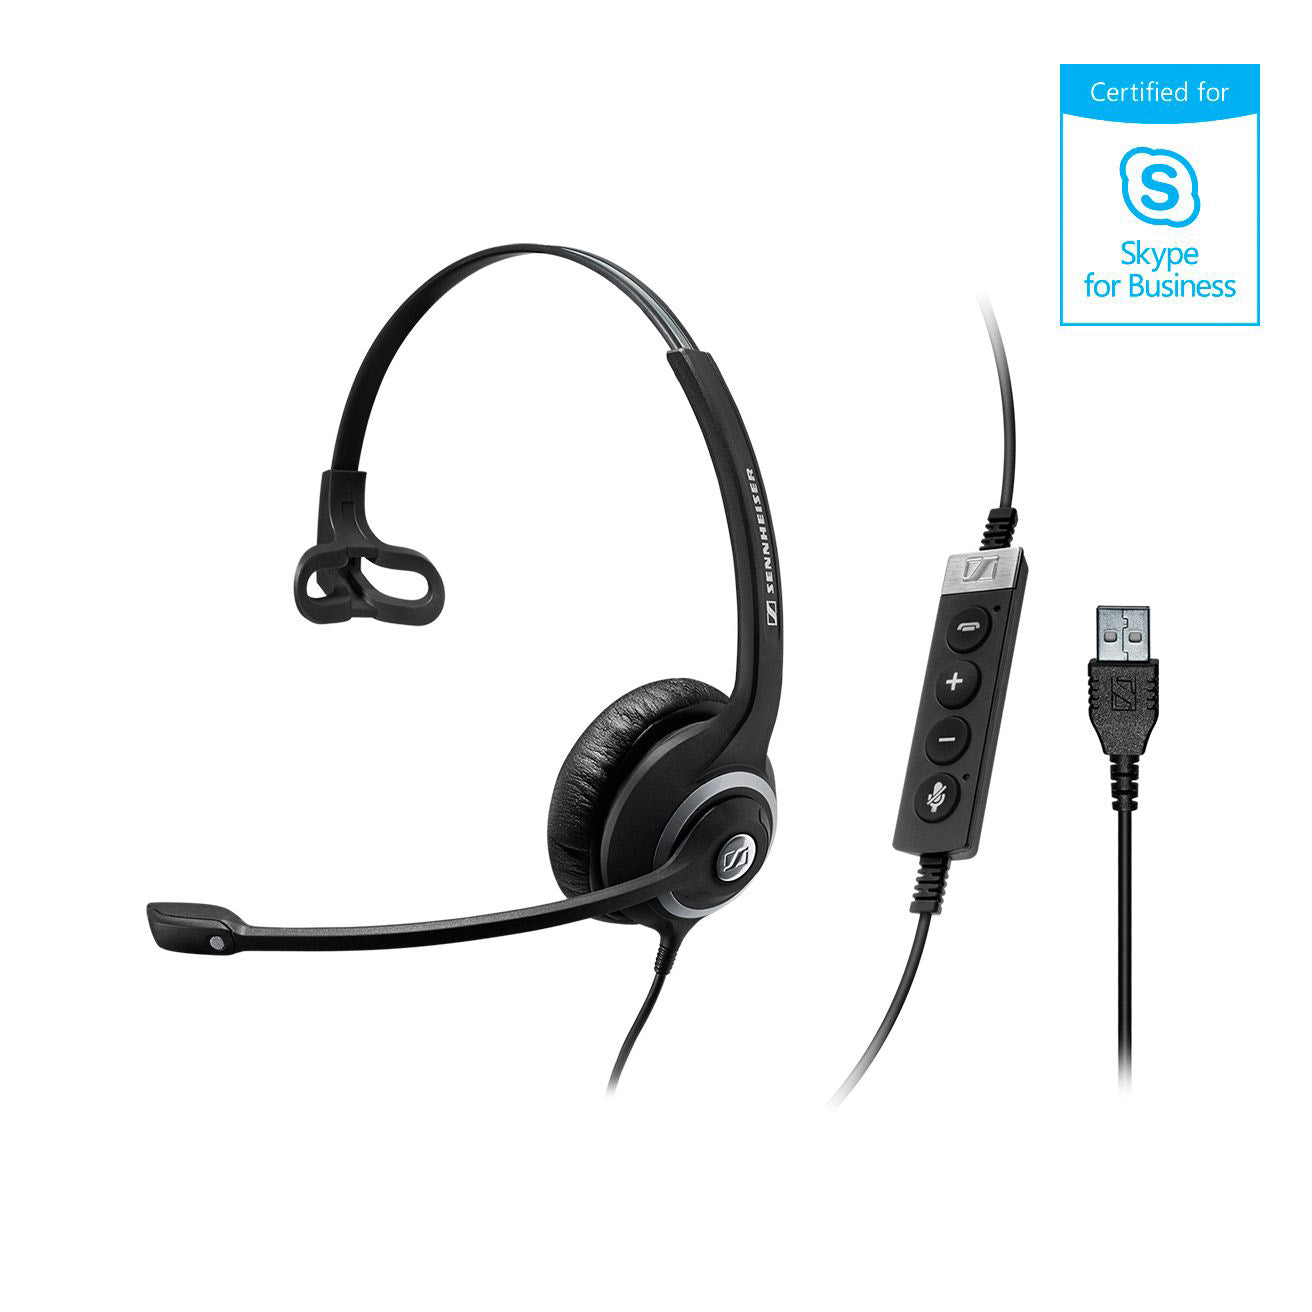 Circle Series Headset - SC230 USB MS II